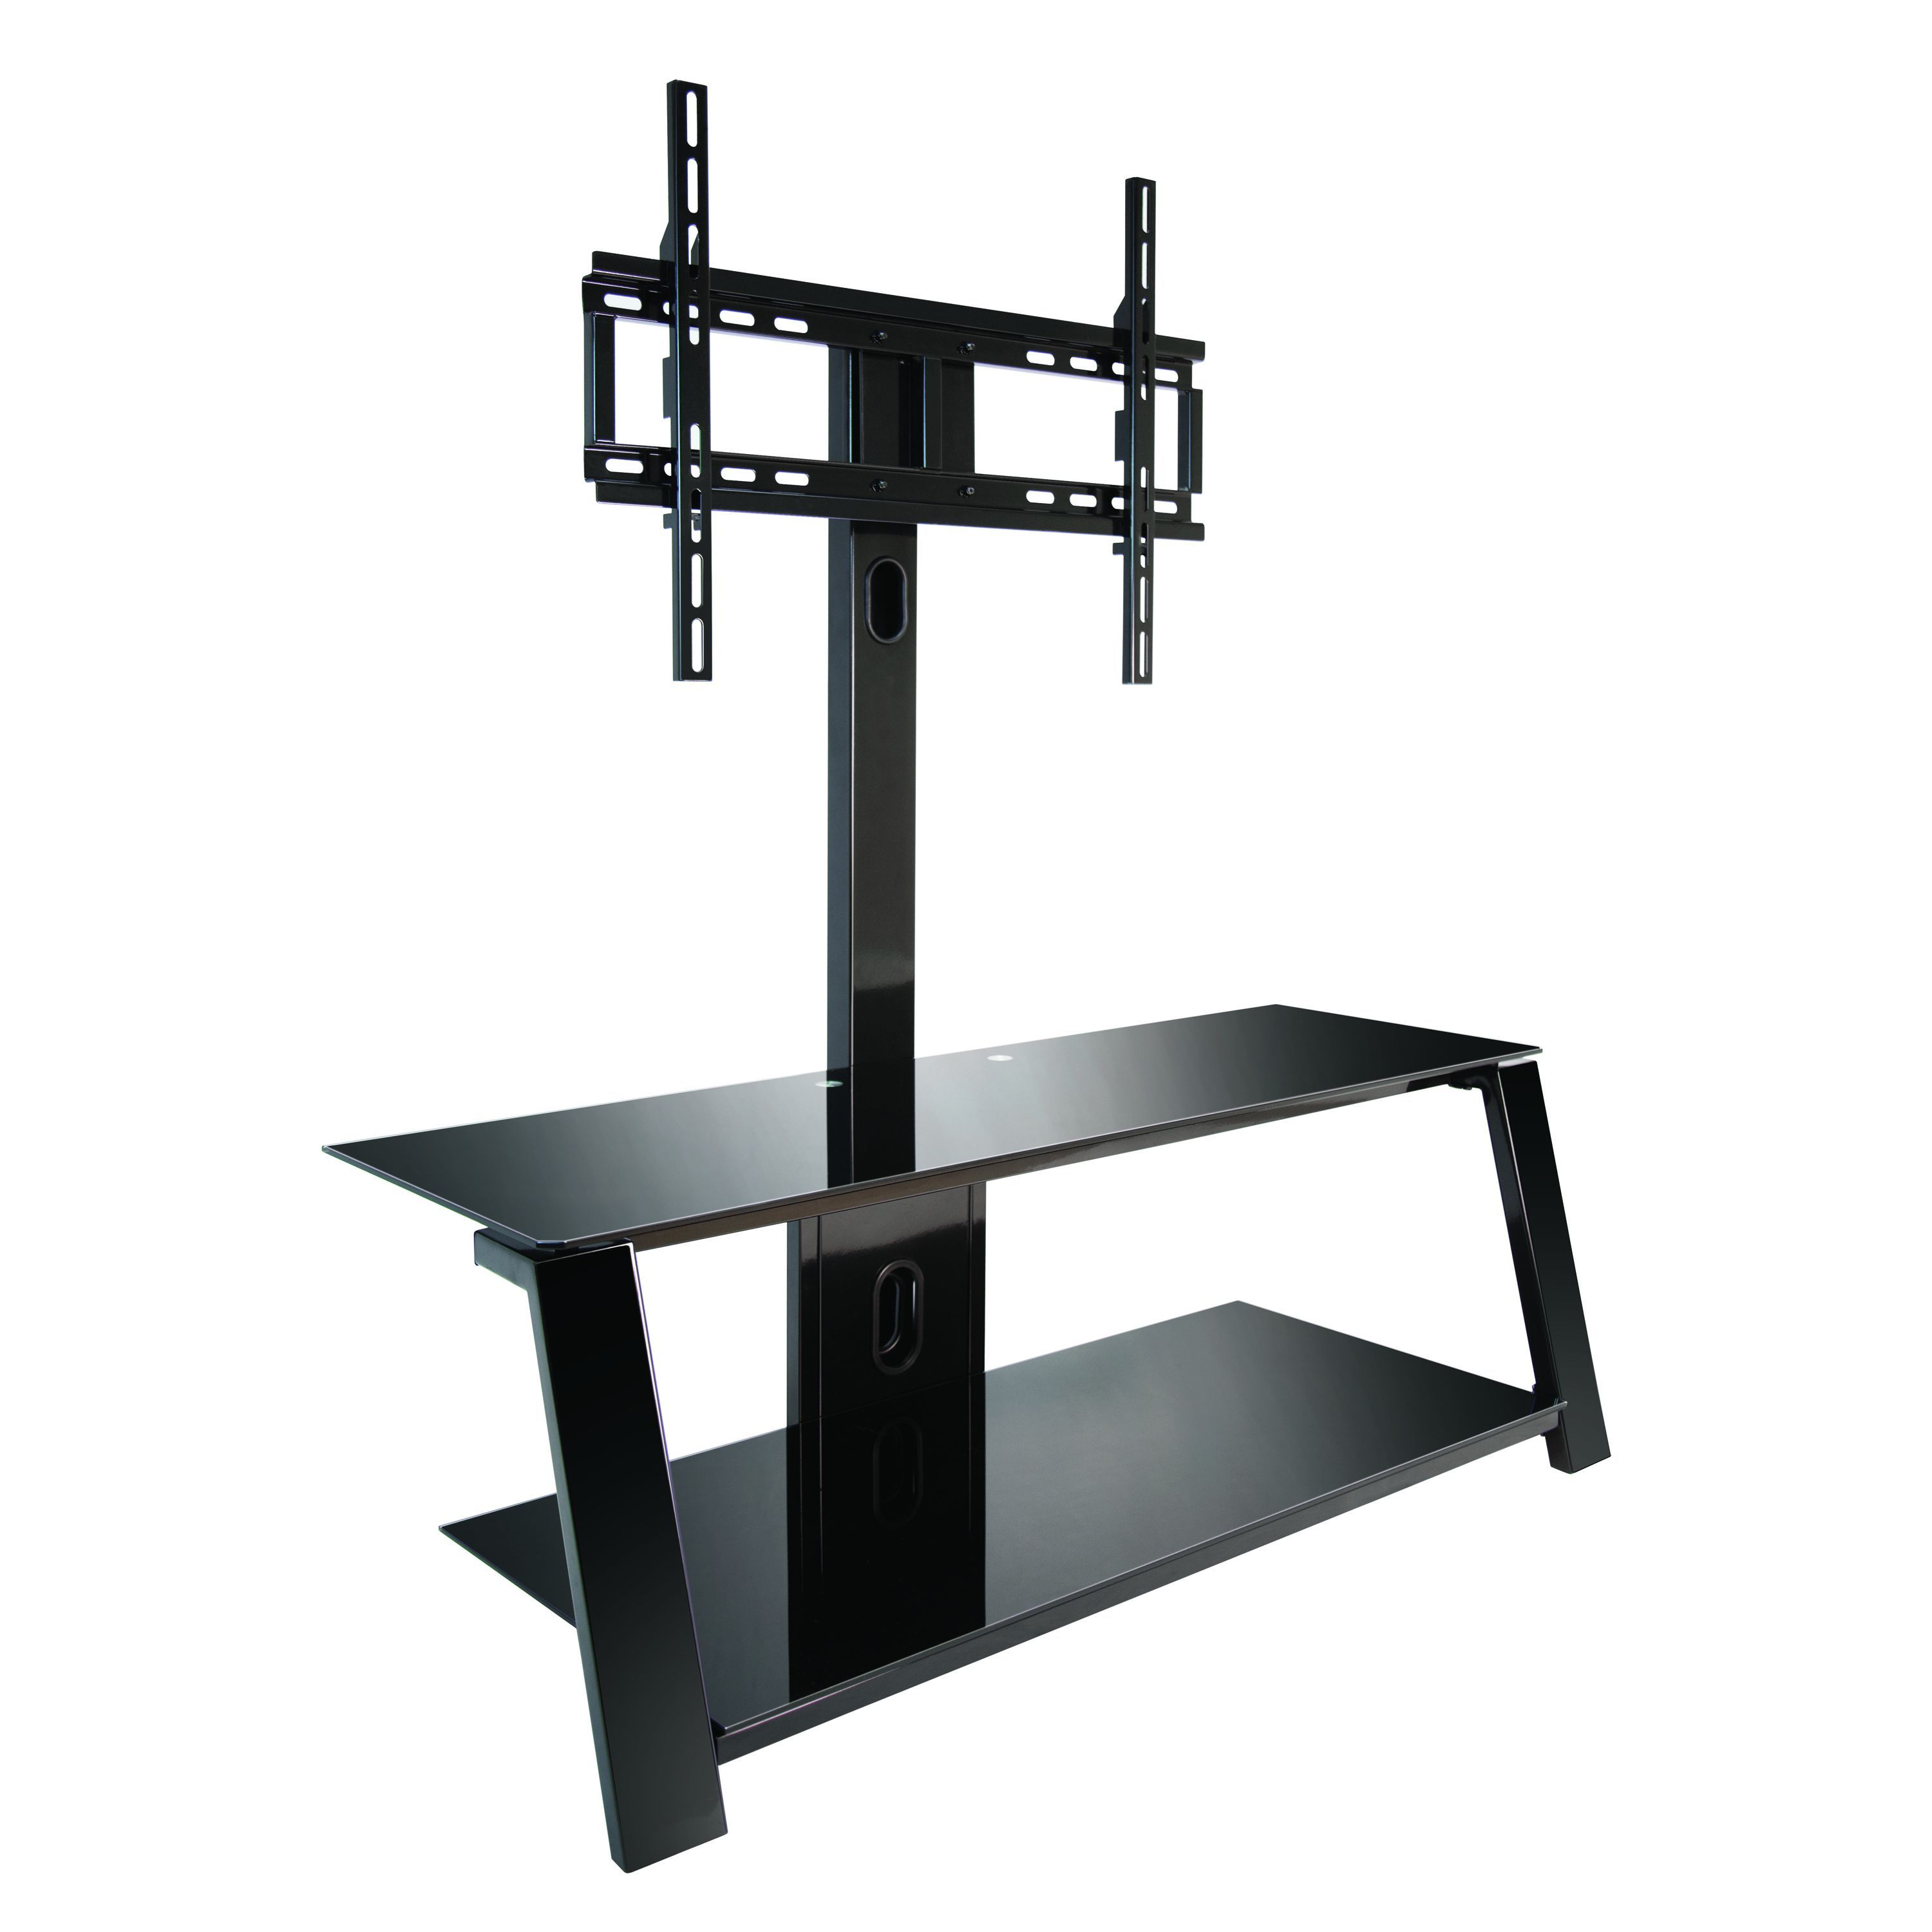 Bell O Tp4444 Triple Play 44 Inch Tv Stand For Tvs Up To 55 Inches